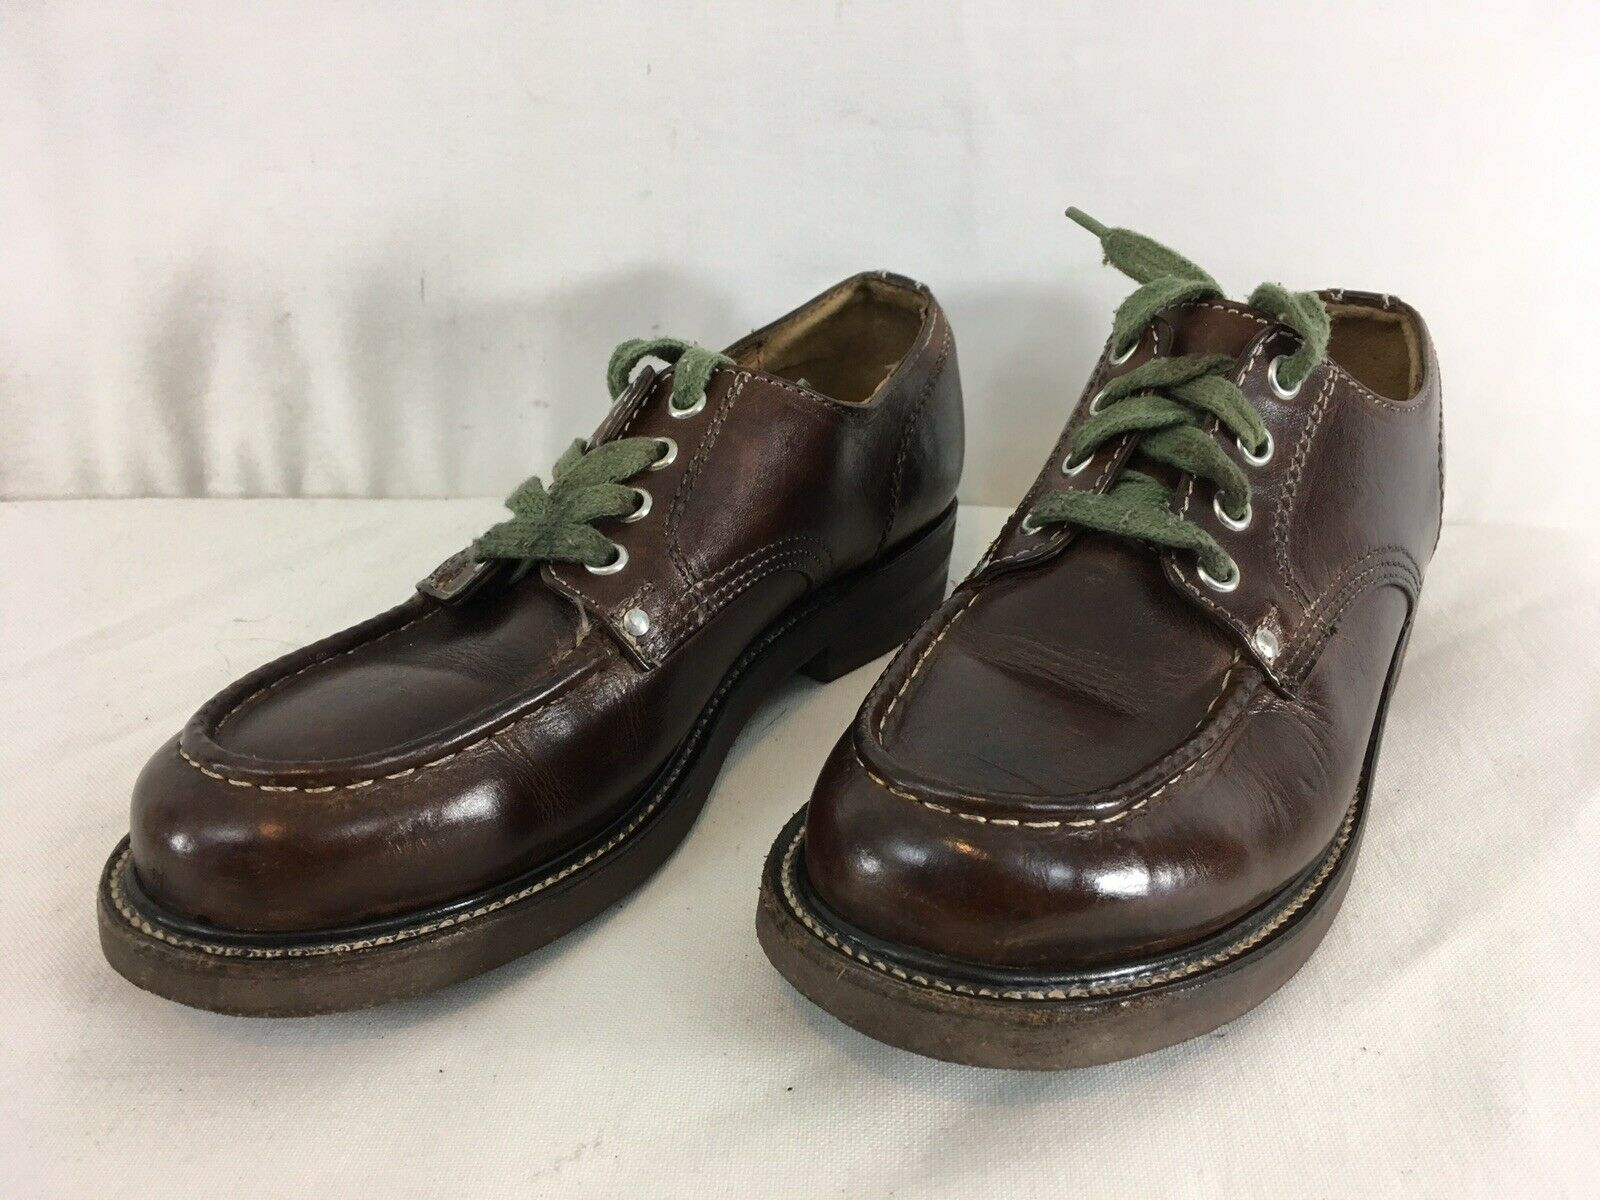 J Crew Mens 7 D Brown Leather Soft Toe Lace Up Oxford Work shoes